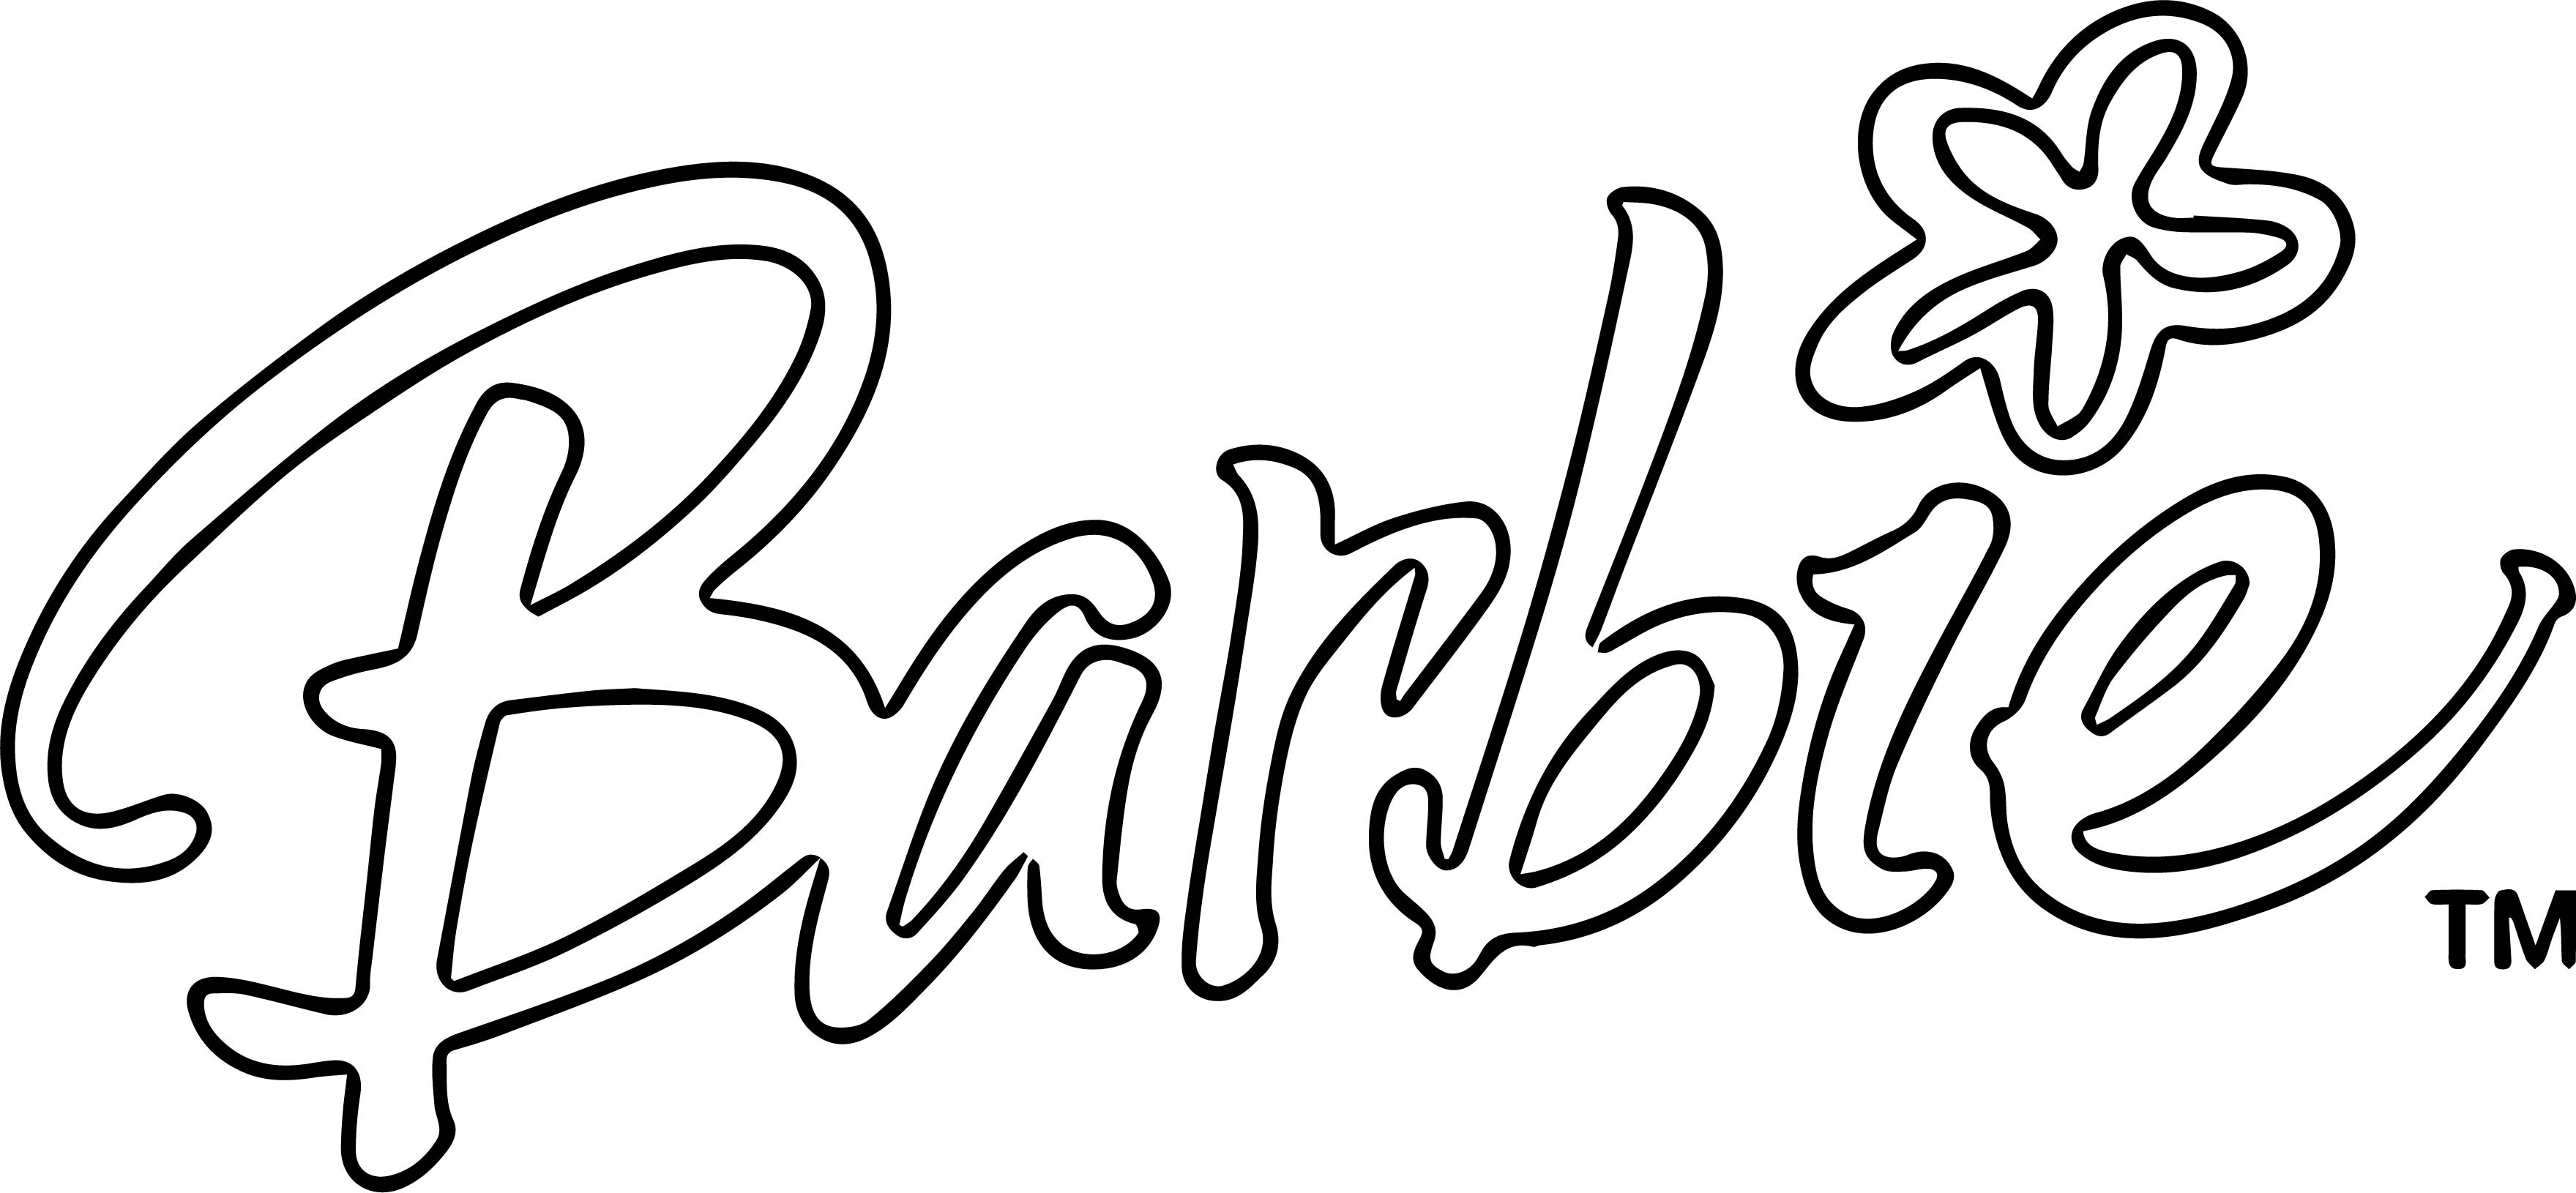 Barbie Text Style Coloring Page